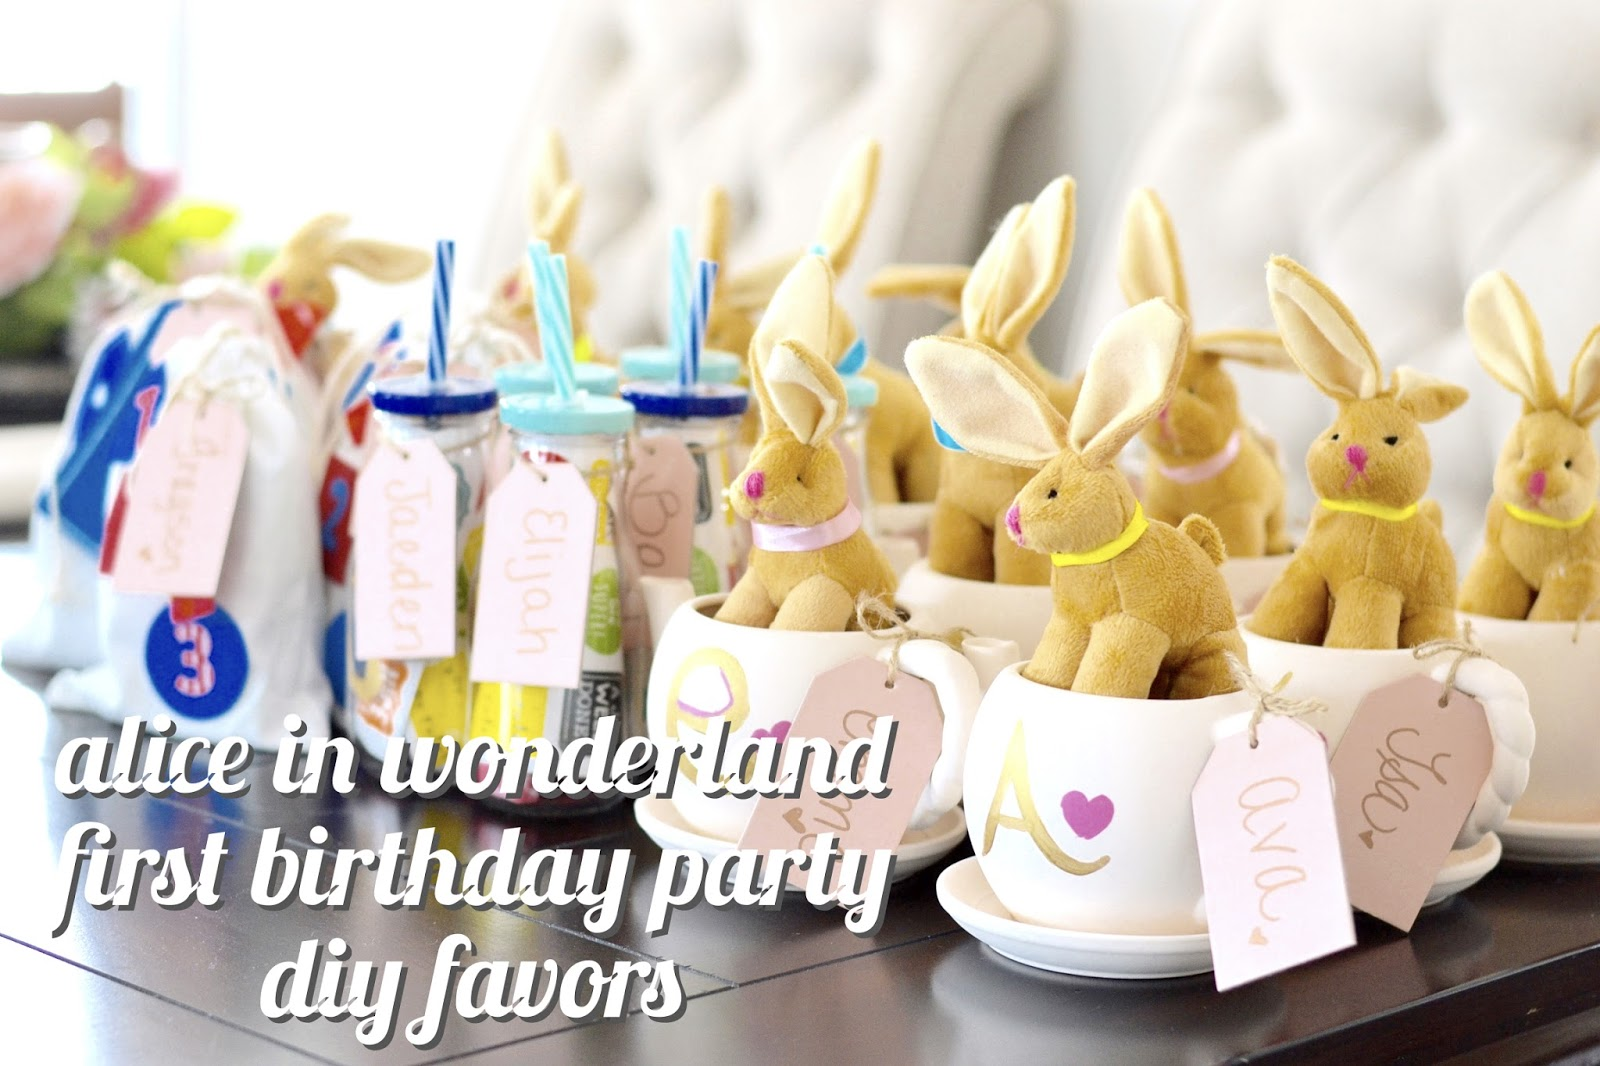 birthday party favor ideas alice in wonderland party